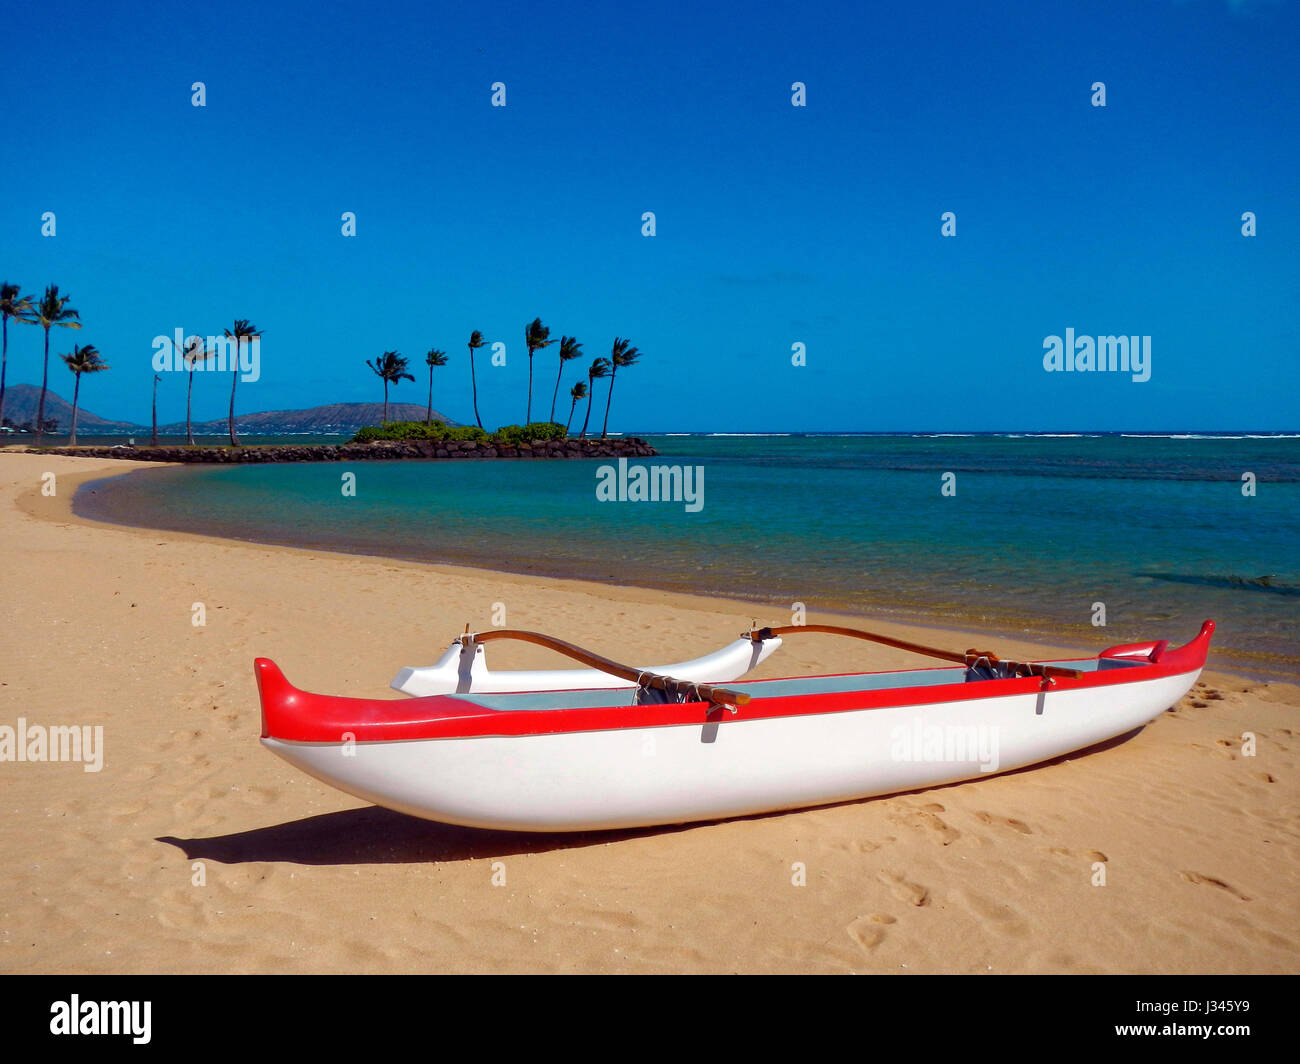 Red and white outrigger canoe on a sandy beach and blue sky in Hawaii - Stock Image